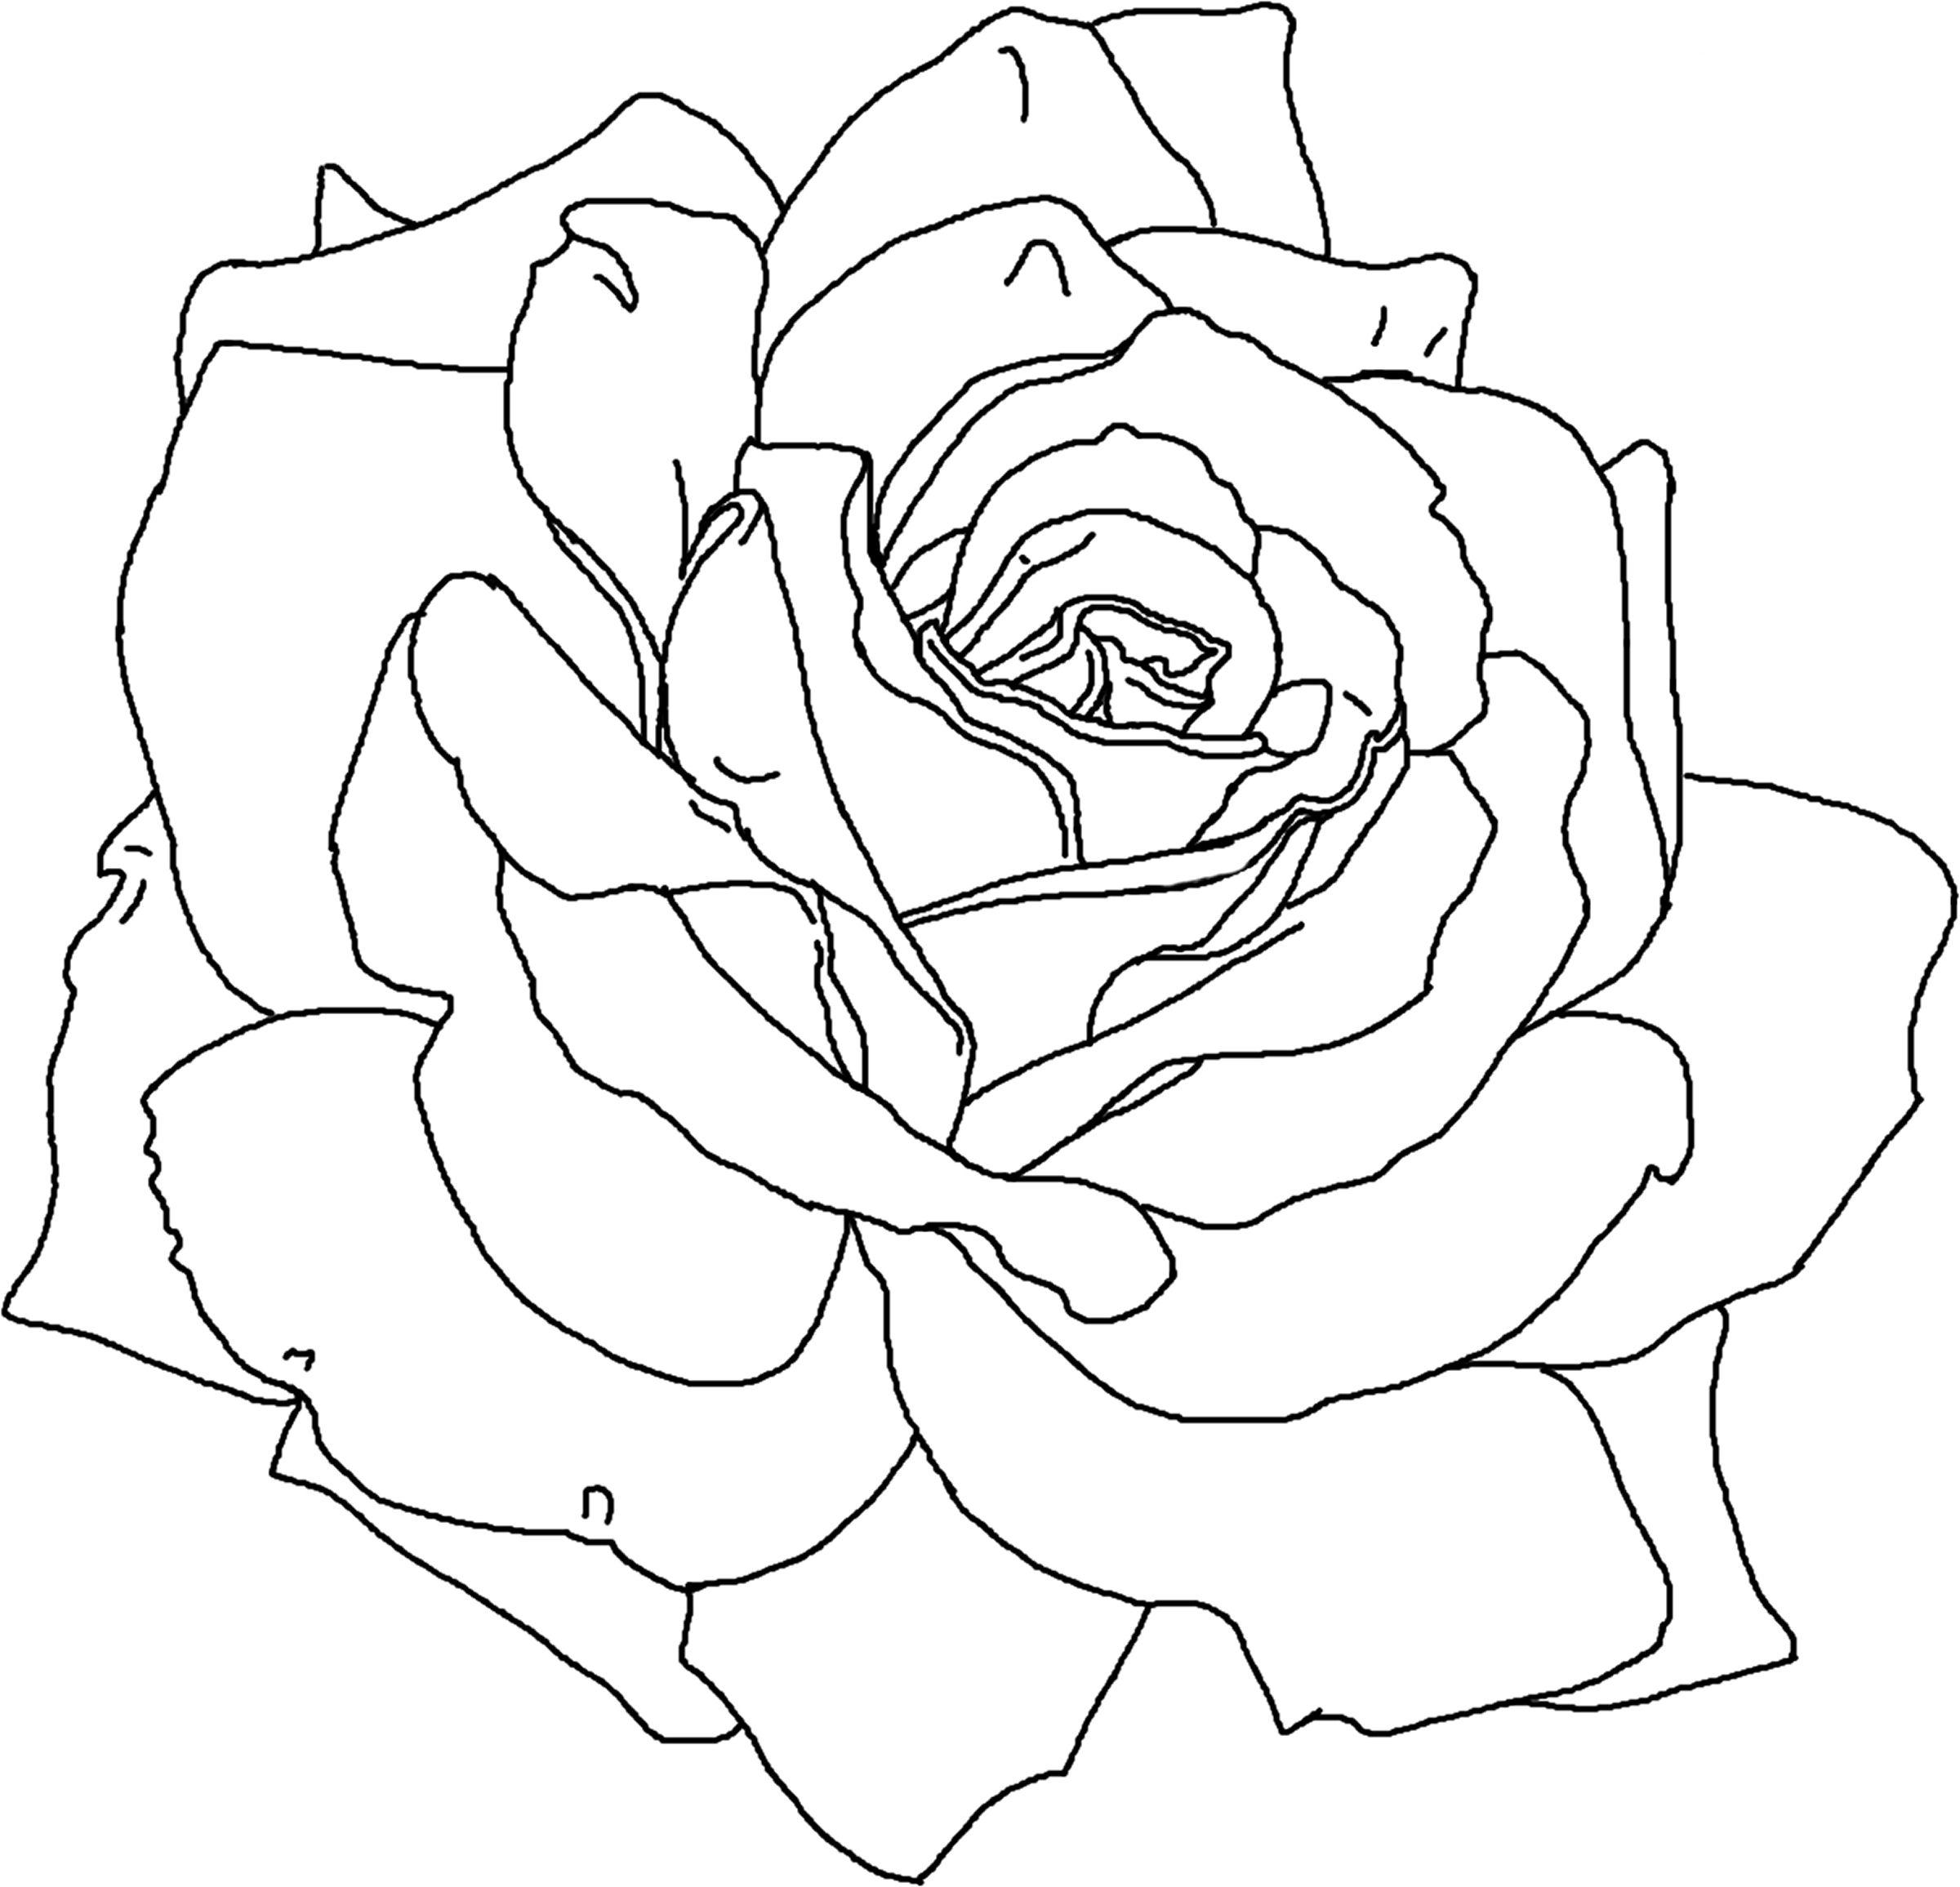 2400x2311 Rose Flower Coloring Pages Printable Flower Coloring Pages